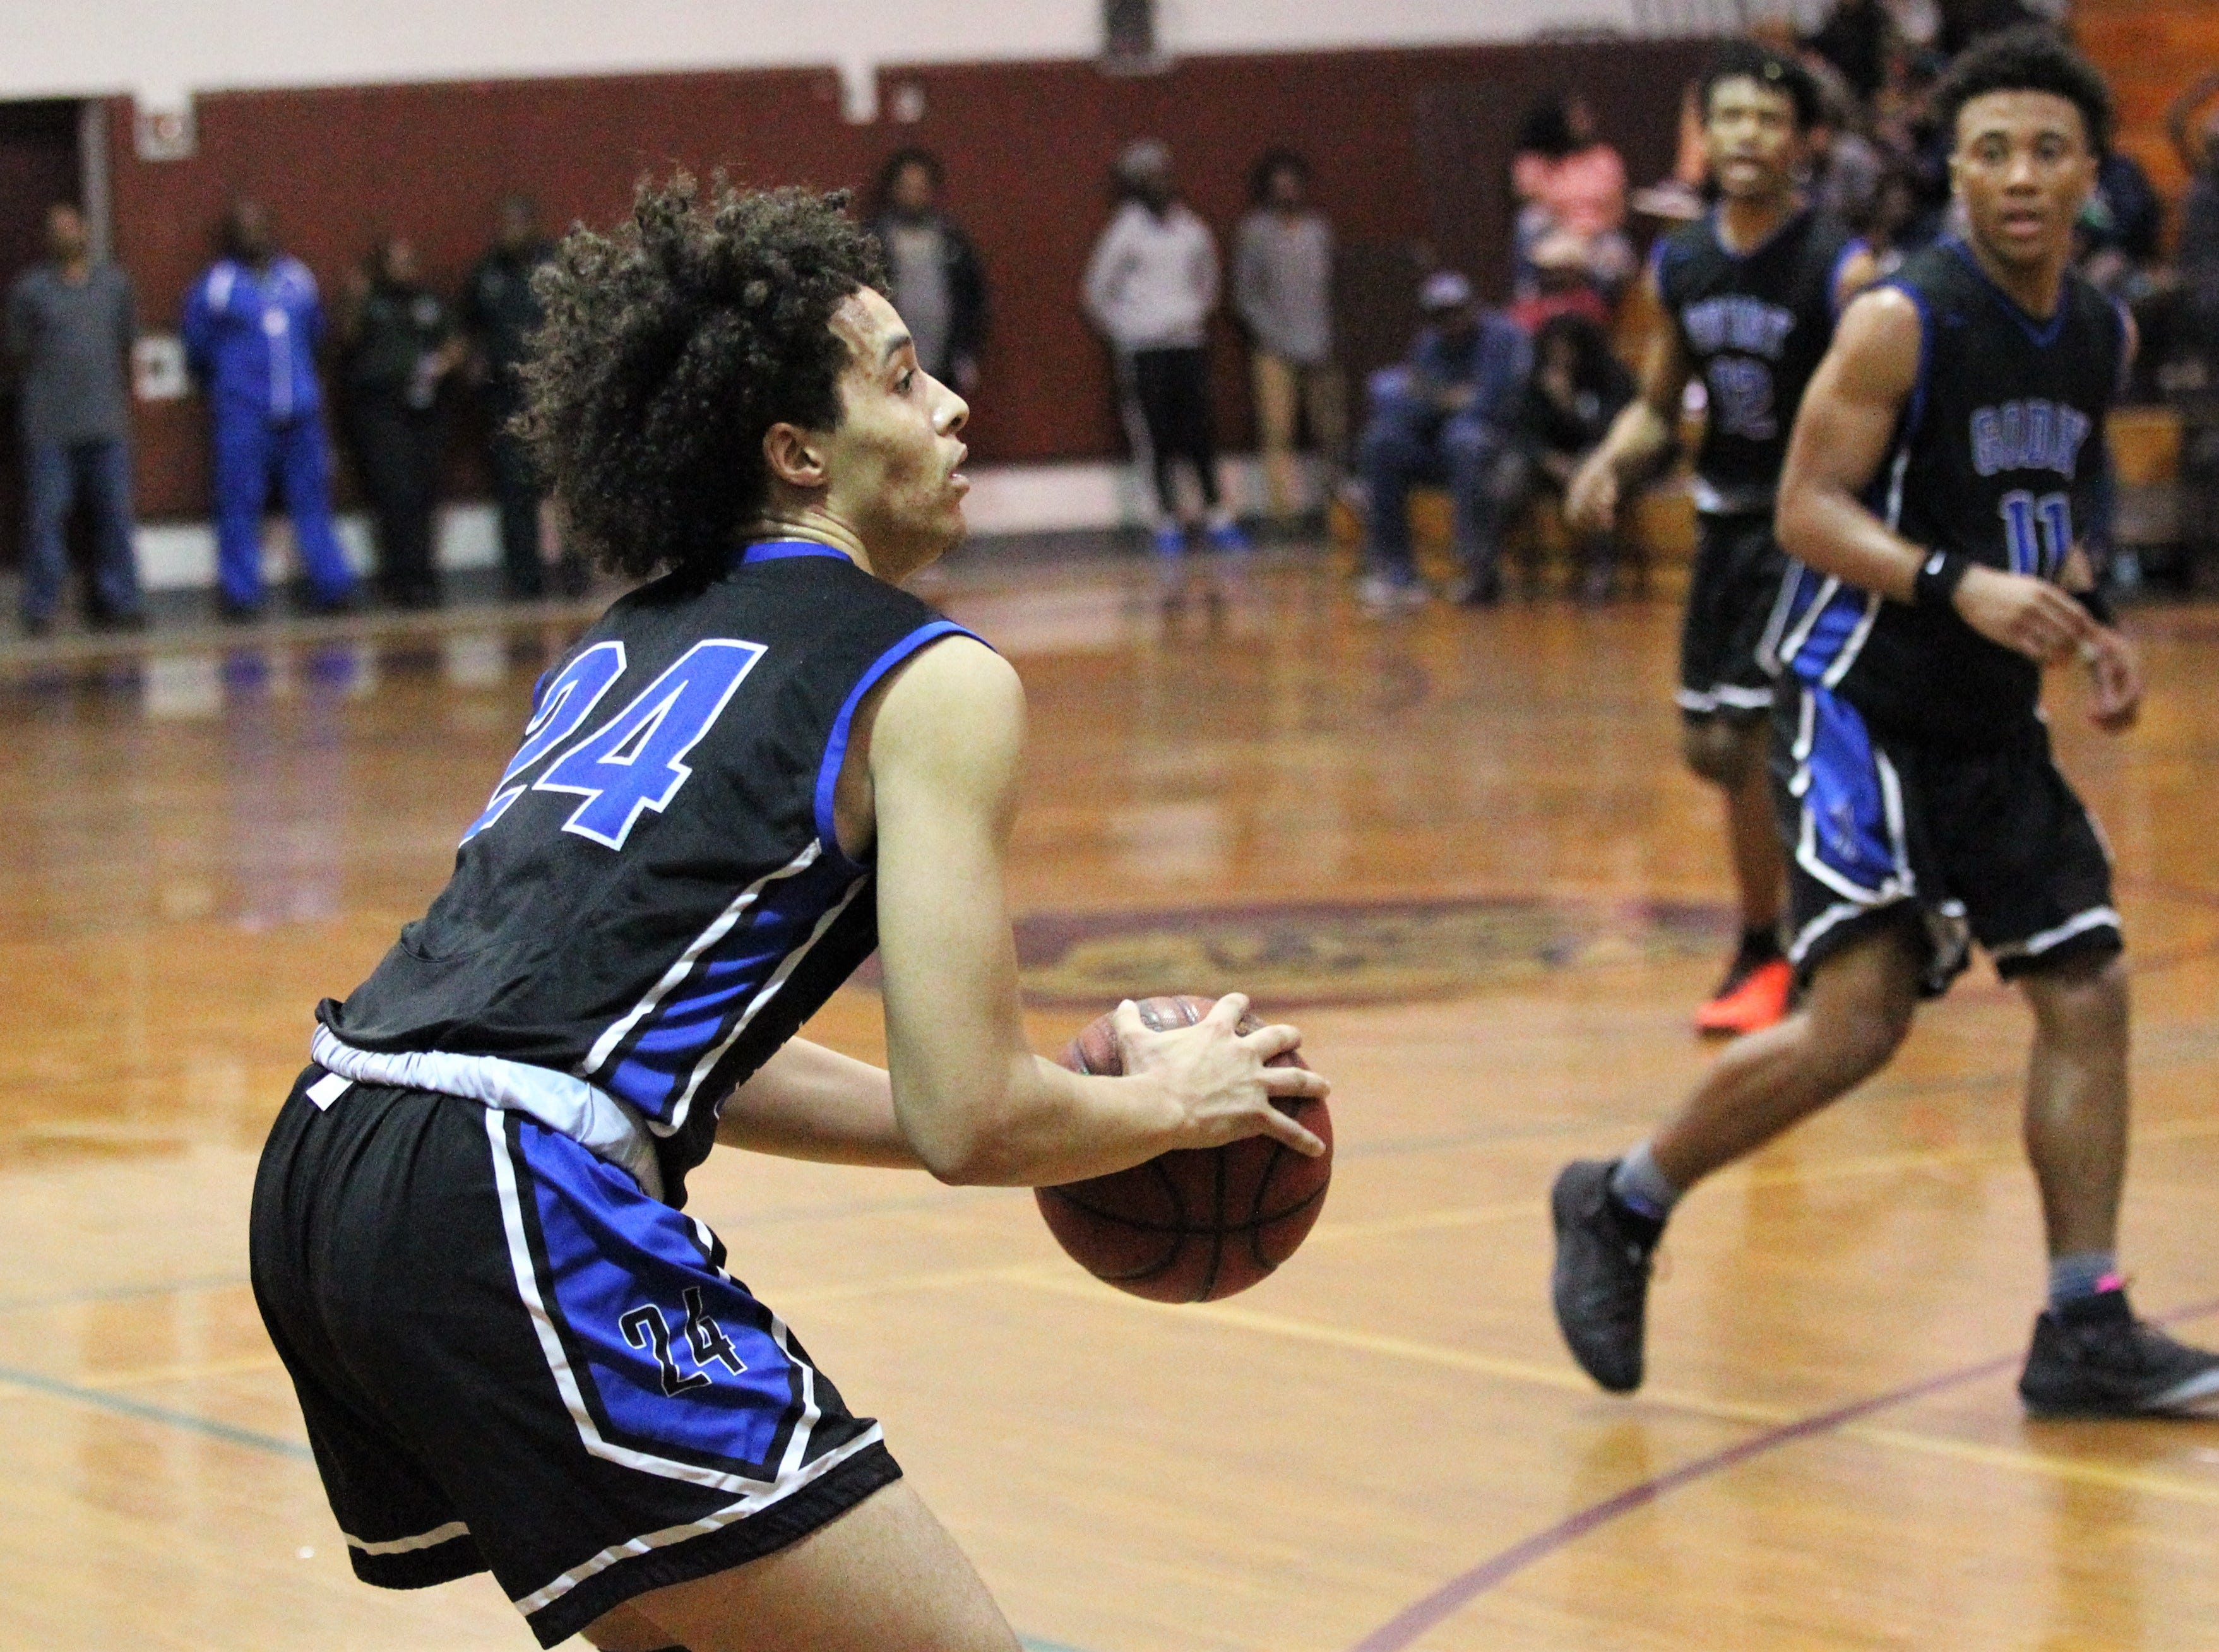 Godby's A.J. Shingles eyeballs a 3-pointer as Rickards' boys basketball team beat Godby 58-47 during a District 2-6A championship game at Chiles on Feb. 15, 2019.